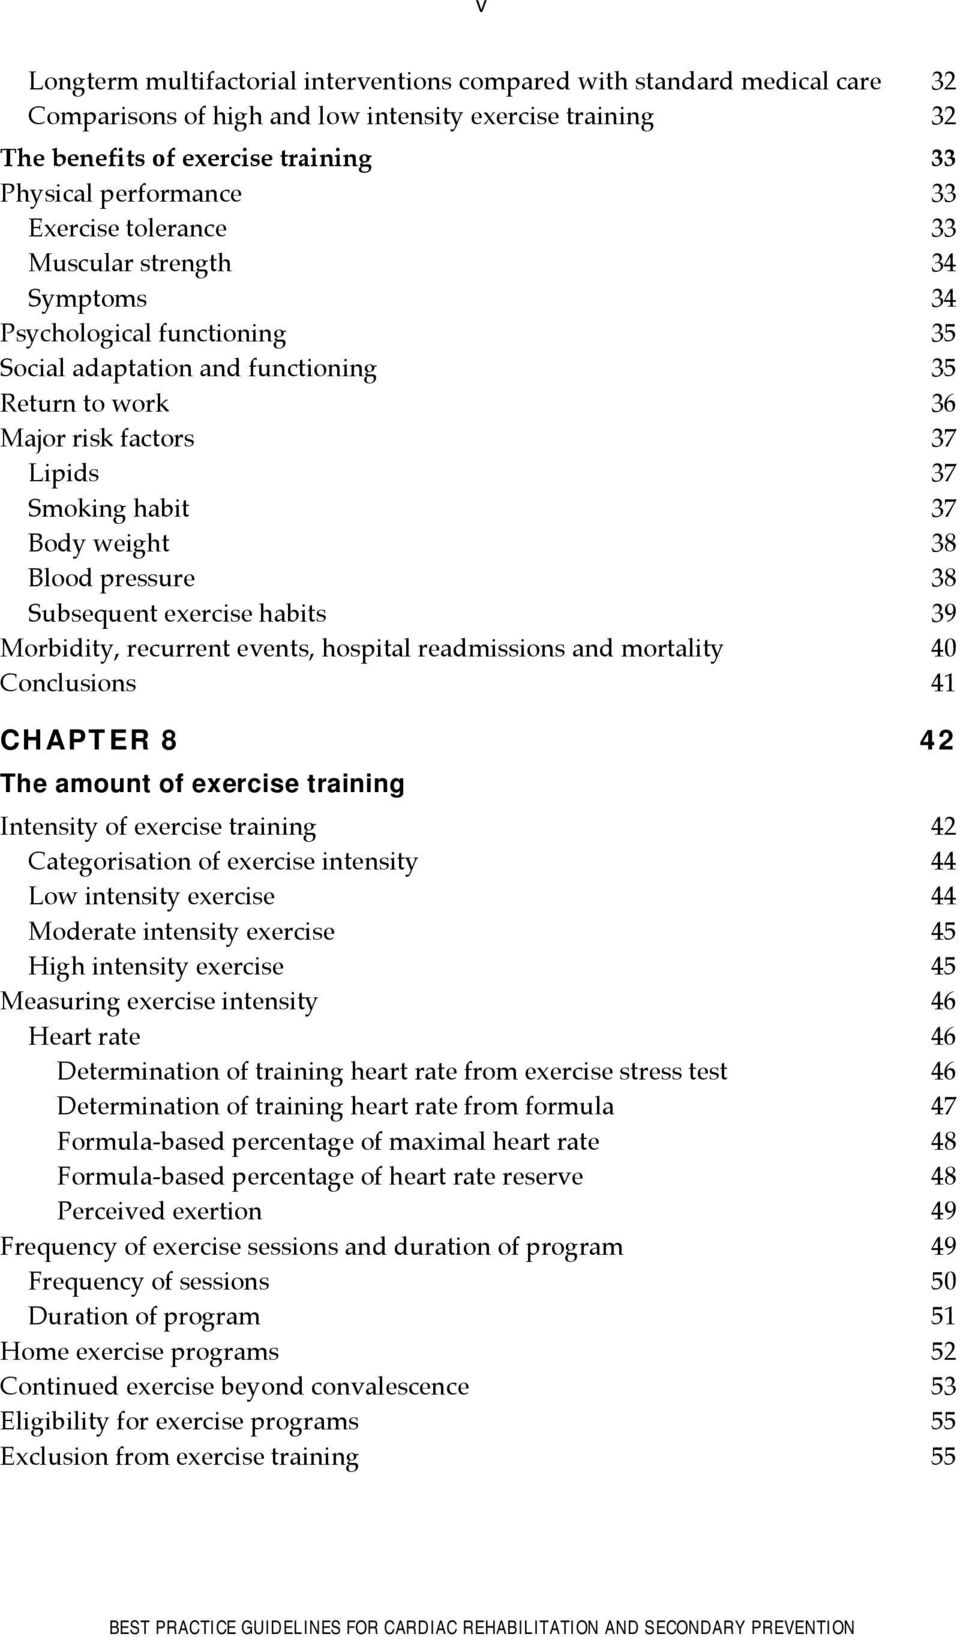 38 Blood pressure 38 Subsequent exercise habits 39 Morbidity, recurrent events, hospital readmissions and mortality 40 Conclusions 41 CHAPTER 8 42 The amount of exercise training Intensity of